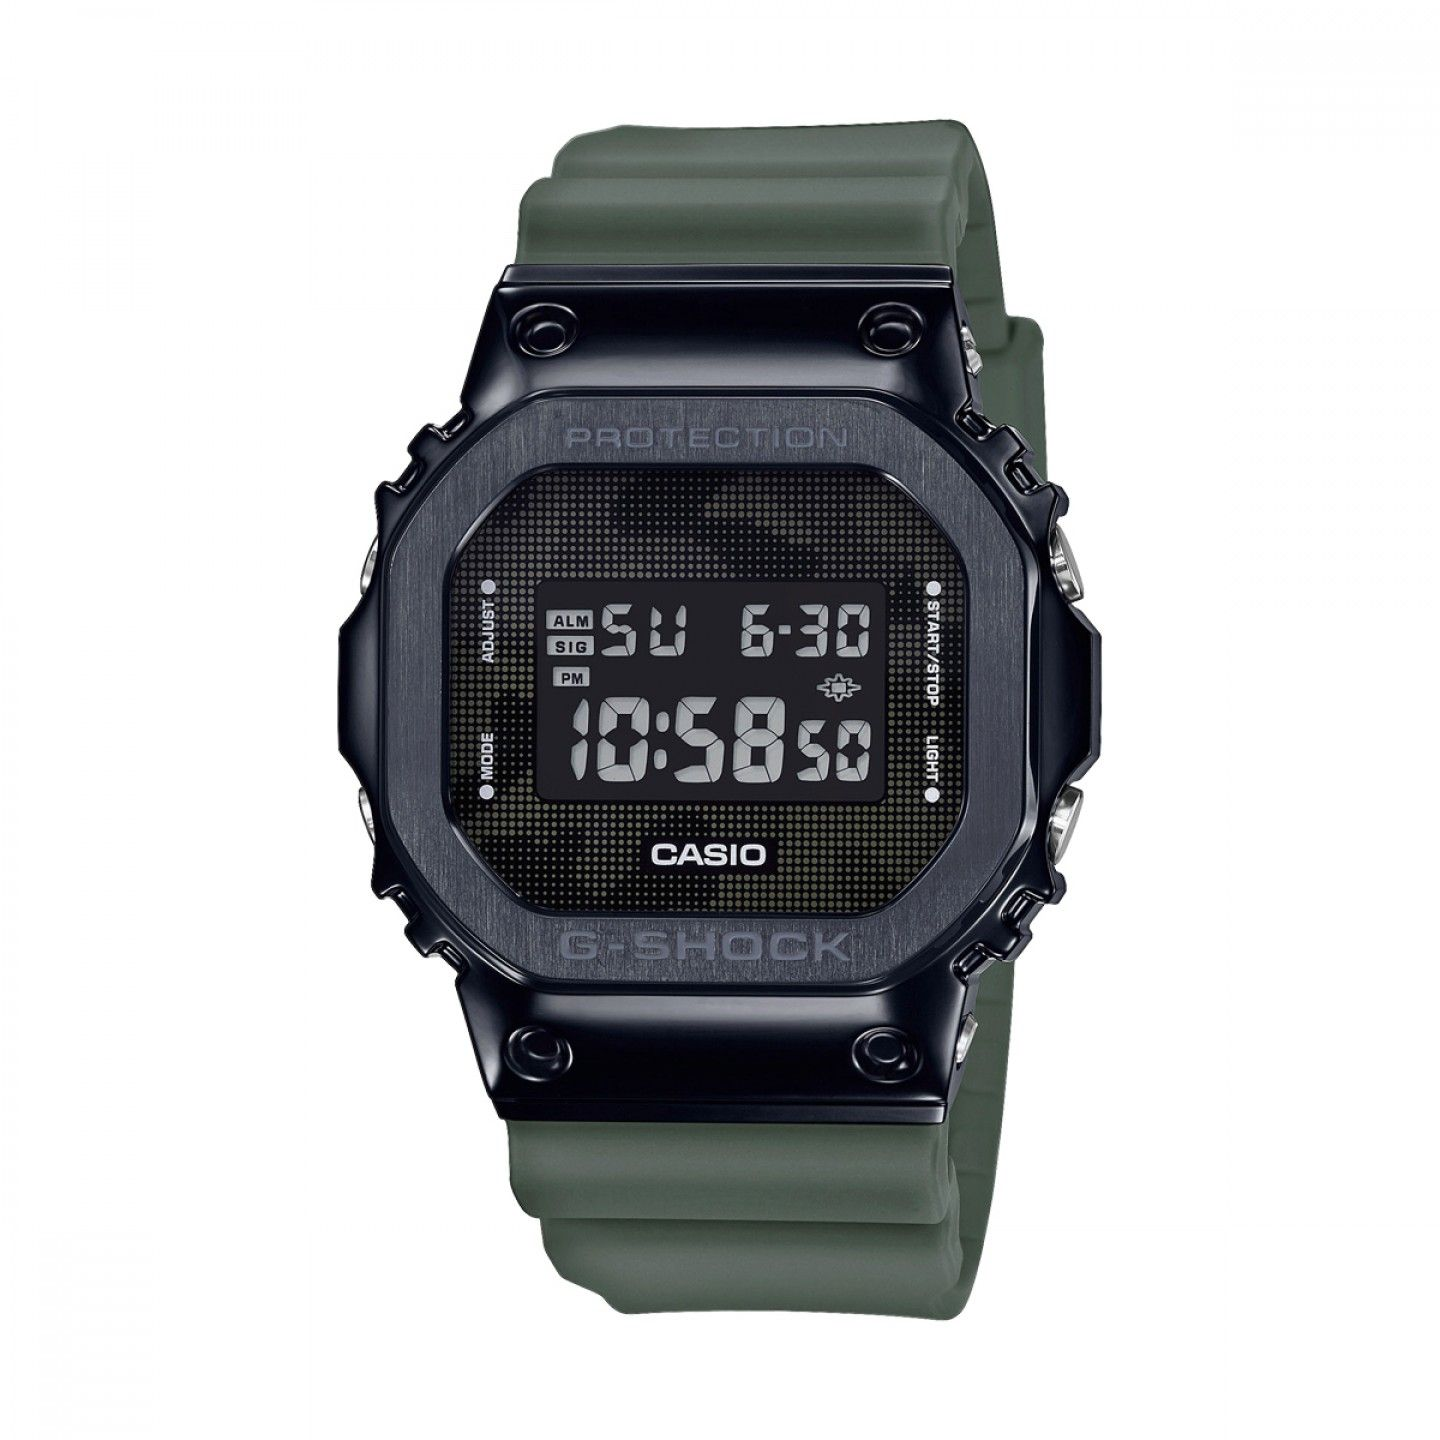 Relógio CASIO G-SHOCK The Origin Verde